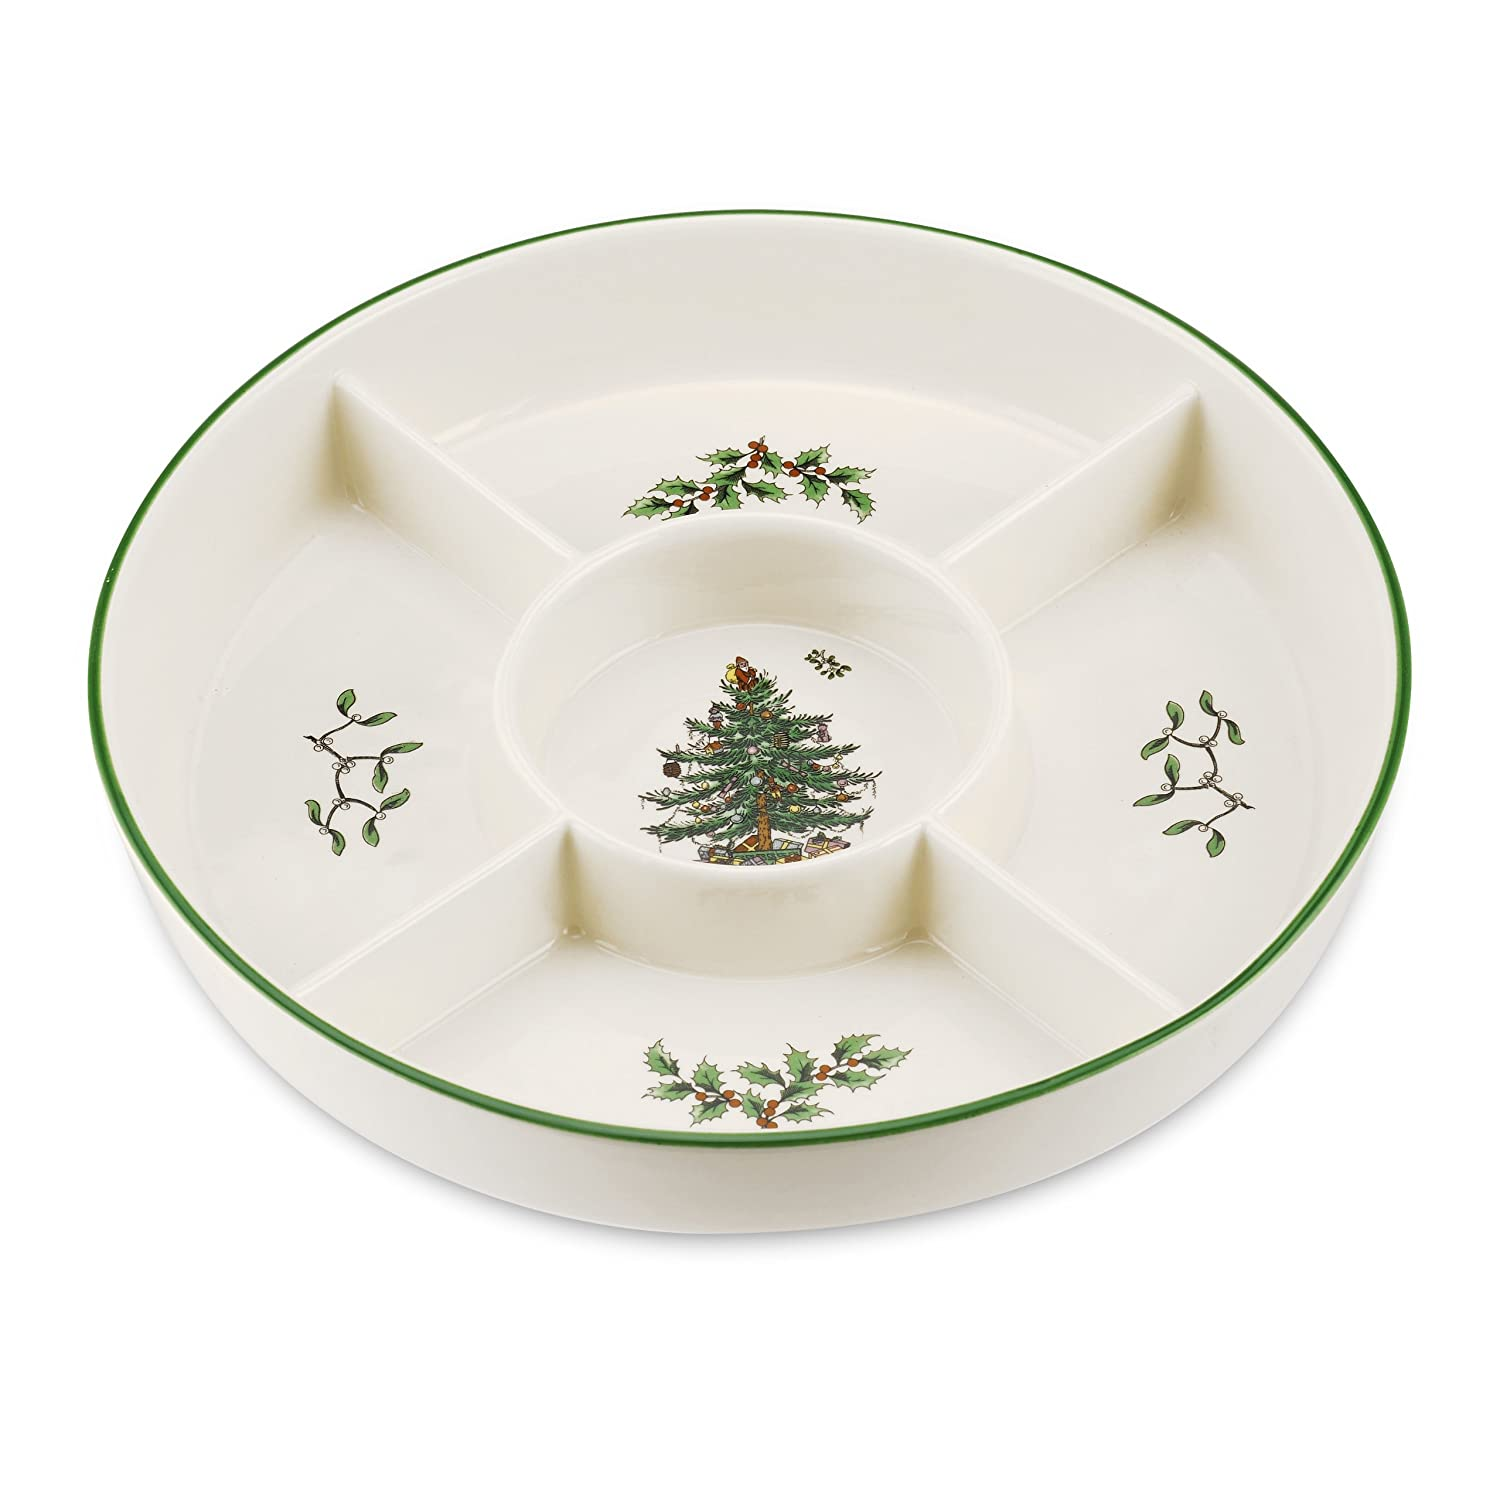 Spode Christmas Tree 5-Section Hors D'oeuvres Low Platter Portmeirion USA 1556249